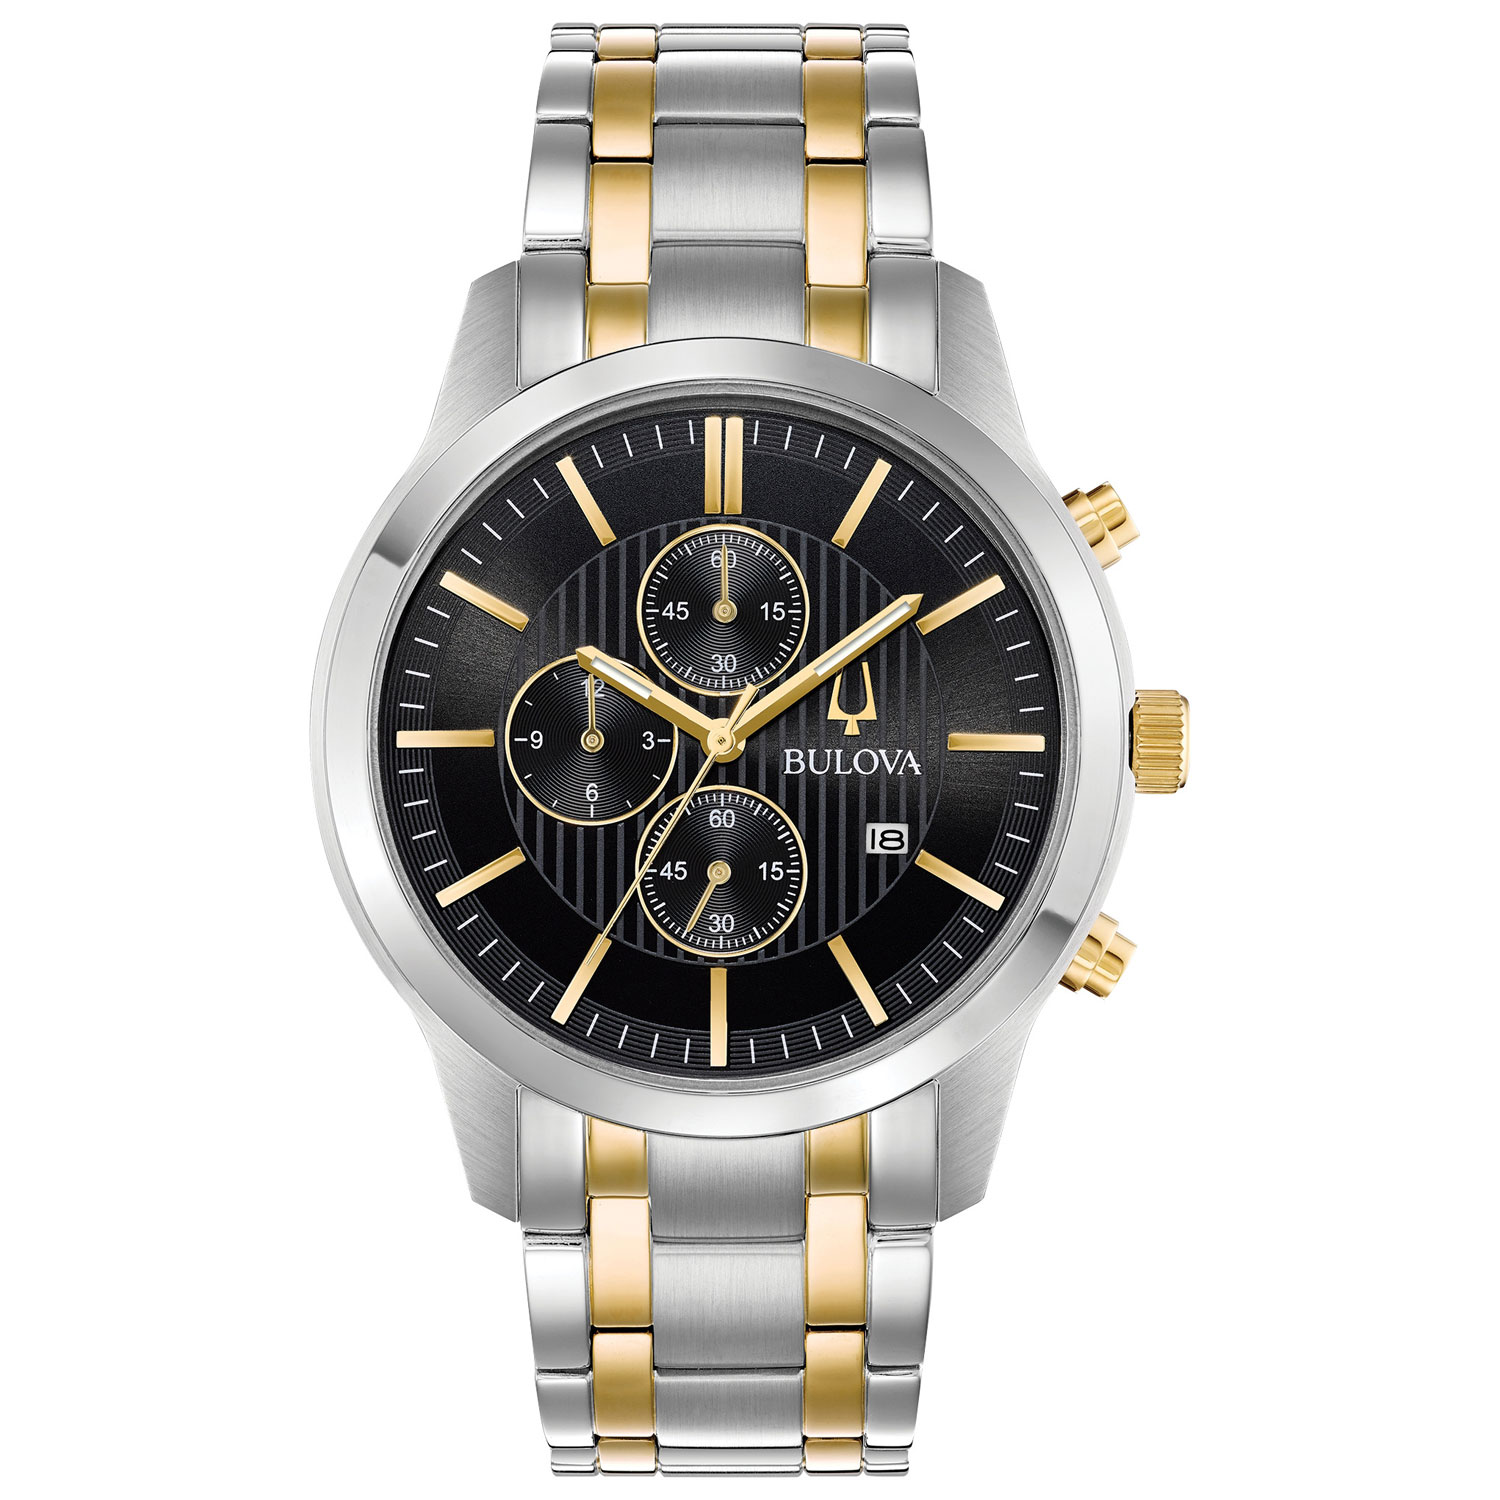 staal mechanische mannen lige brand item topmerk automatic watches heren automatische watch luik steel luxe horloge volledige horloges full waterdichte waterproof top sport mechanical business relogio men mens luxury